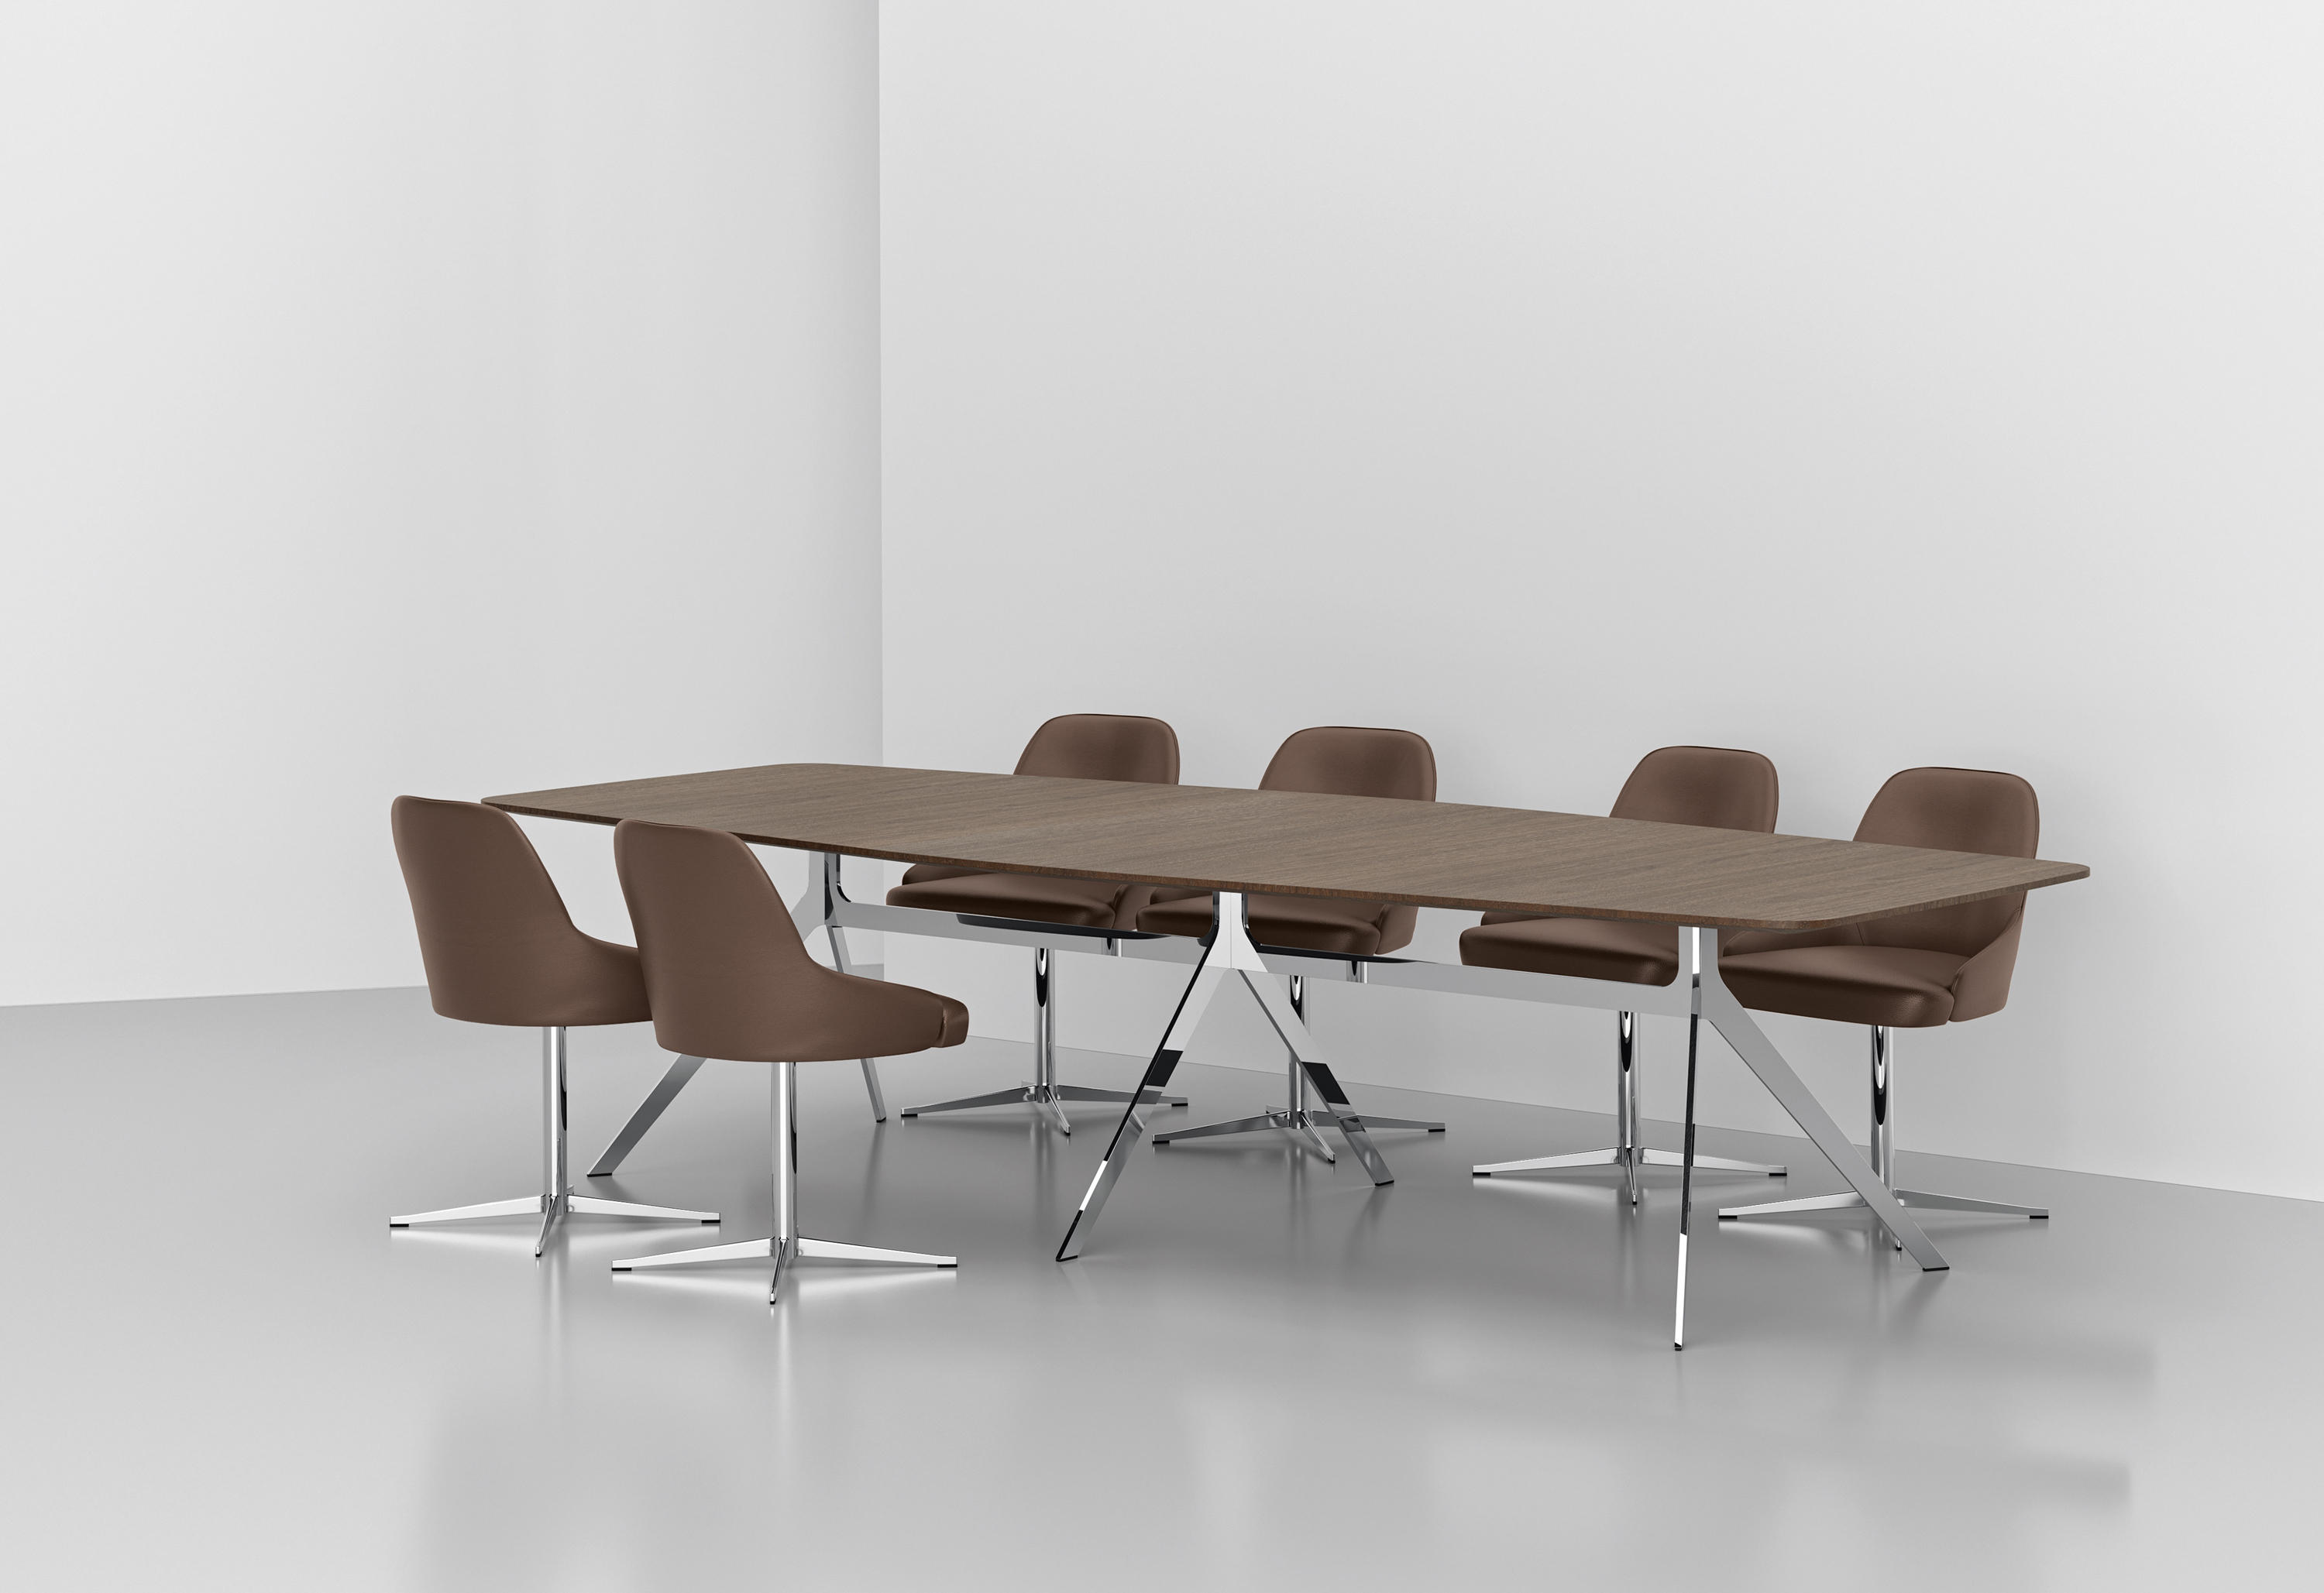 star conference table conference tables from renz architonic. Black Bedroom Furniture Sets. Home Design Ideas